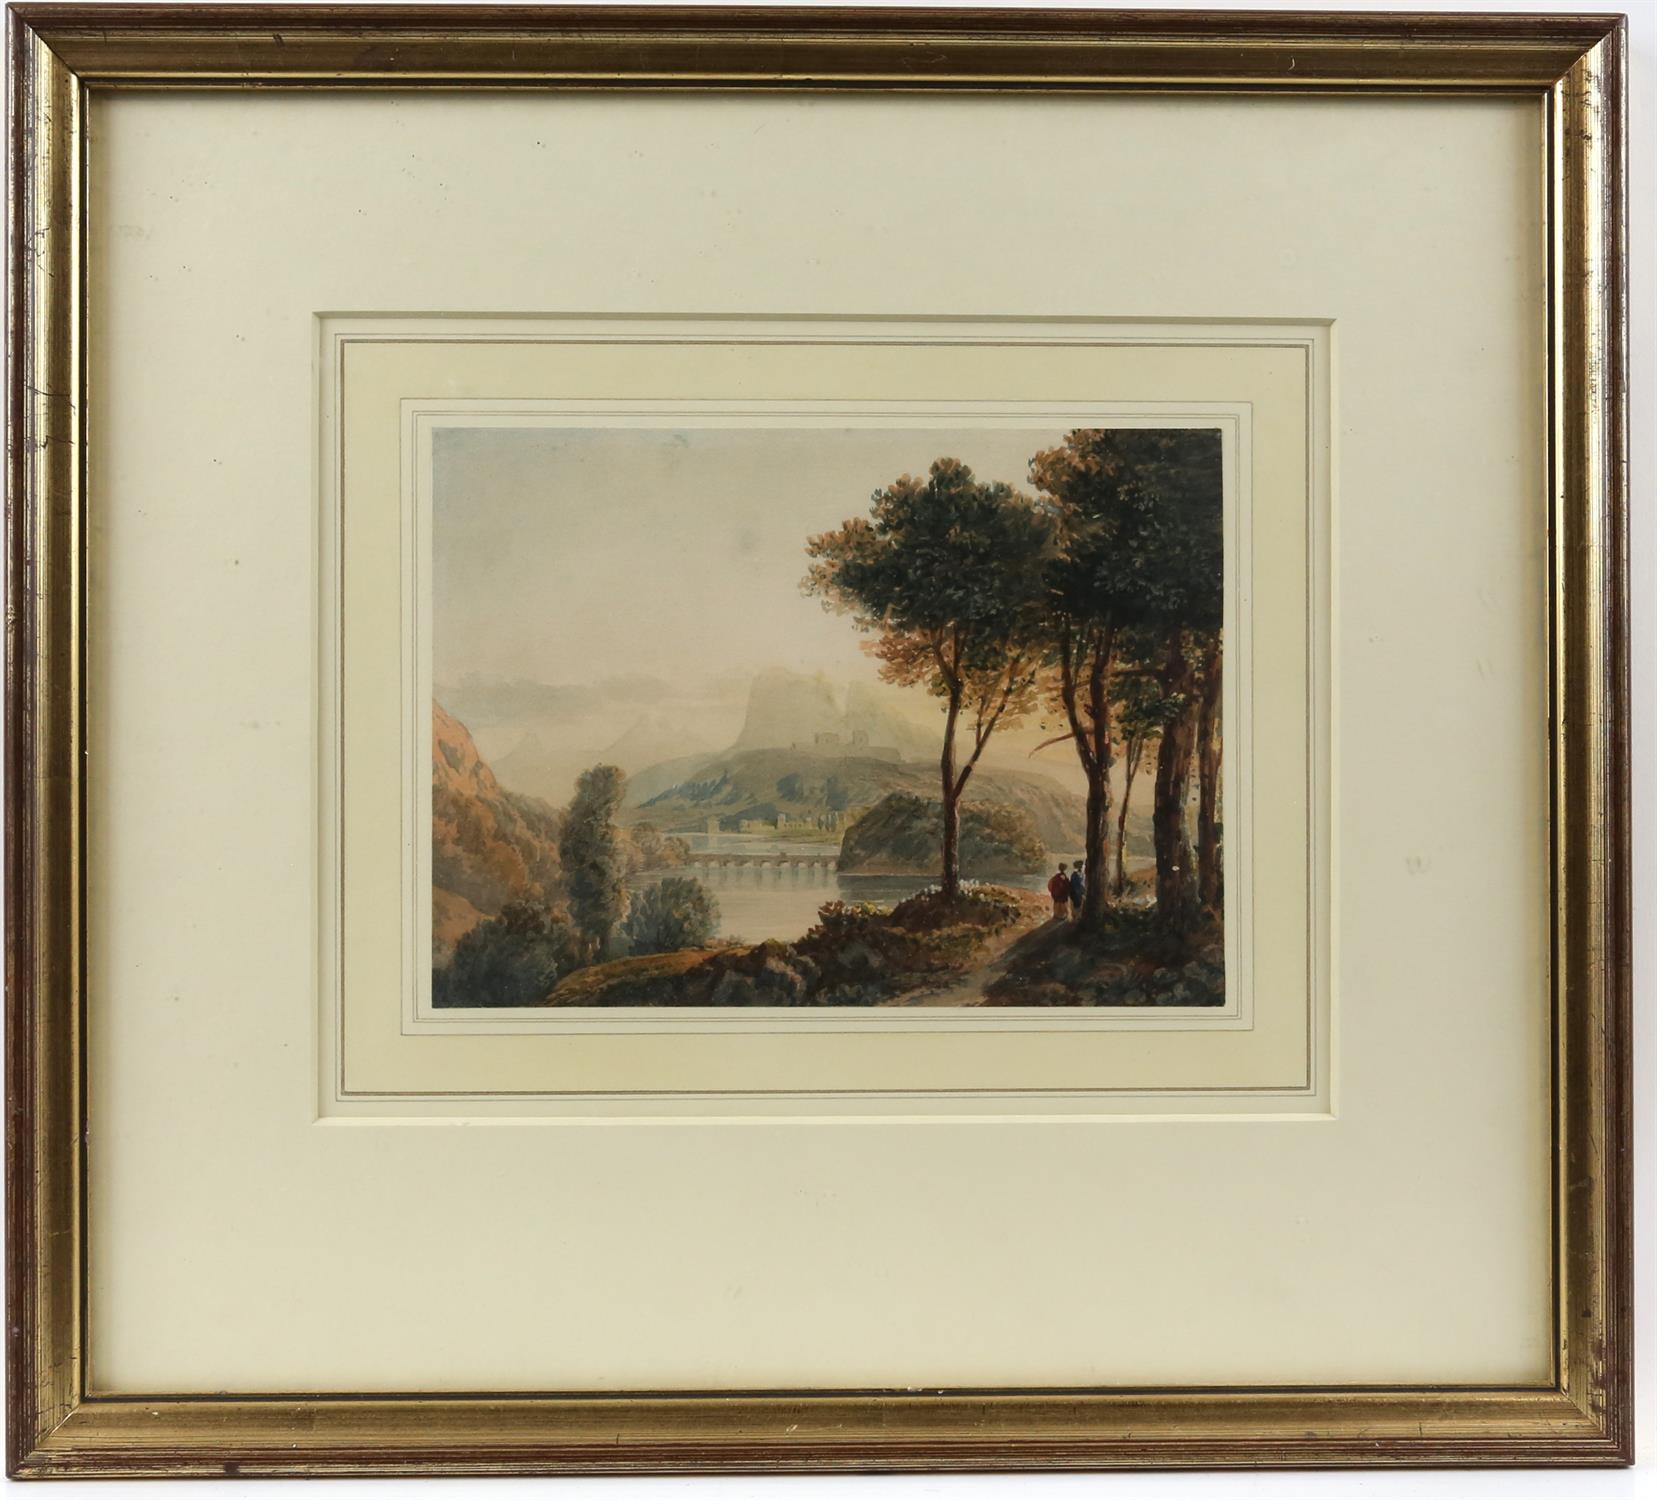 Circle of Francis Oliver Finch (British, 1802-1862), classical landscape with figures on a path in - Image 2 of 3